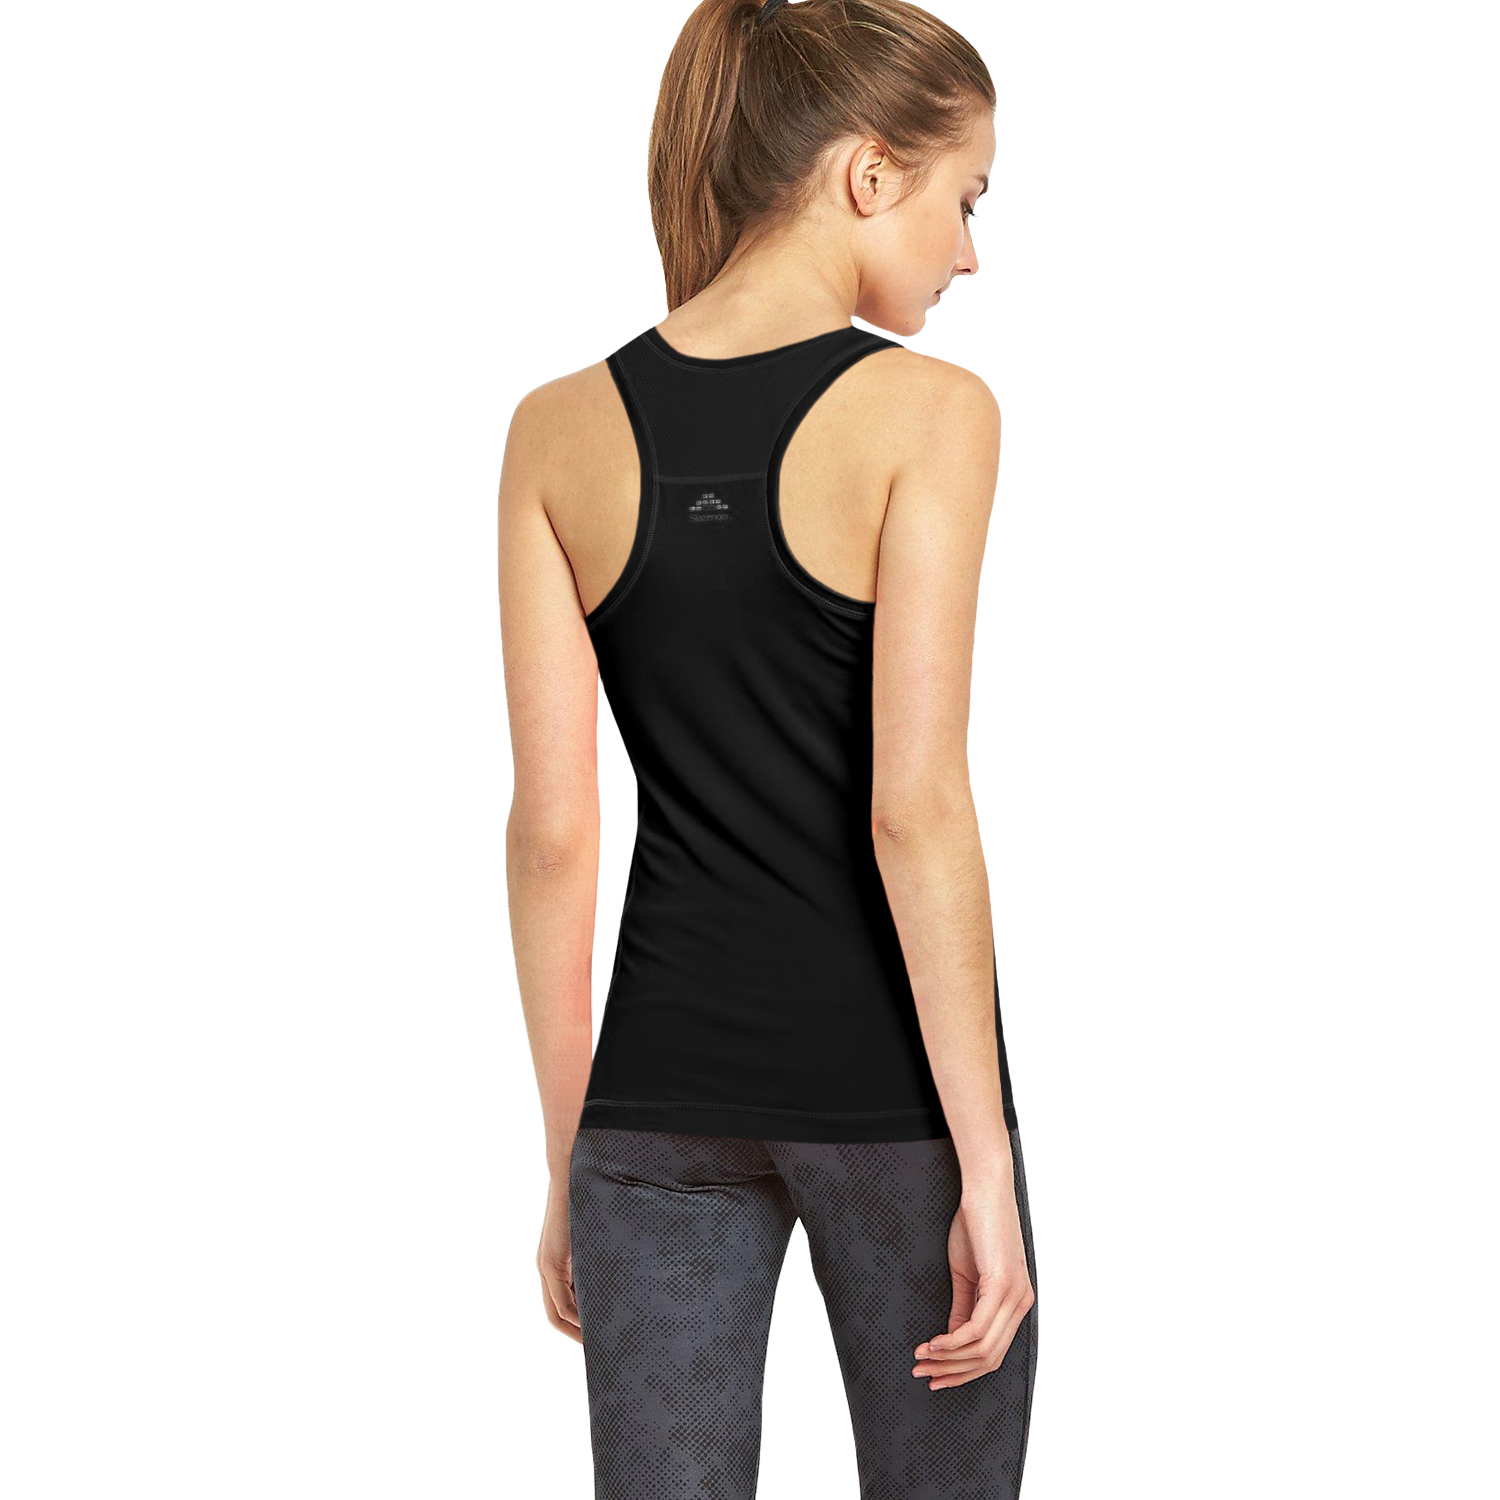 Enjoy free shipping and easy returns every day at Kohl's. Find great deals on Womens Vests Sleeveless at Kohl's today!